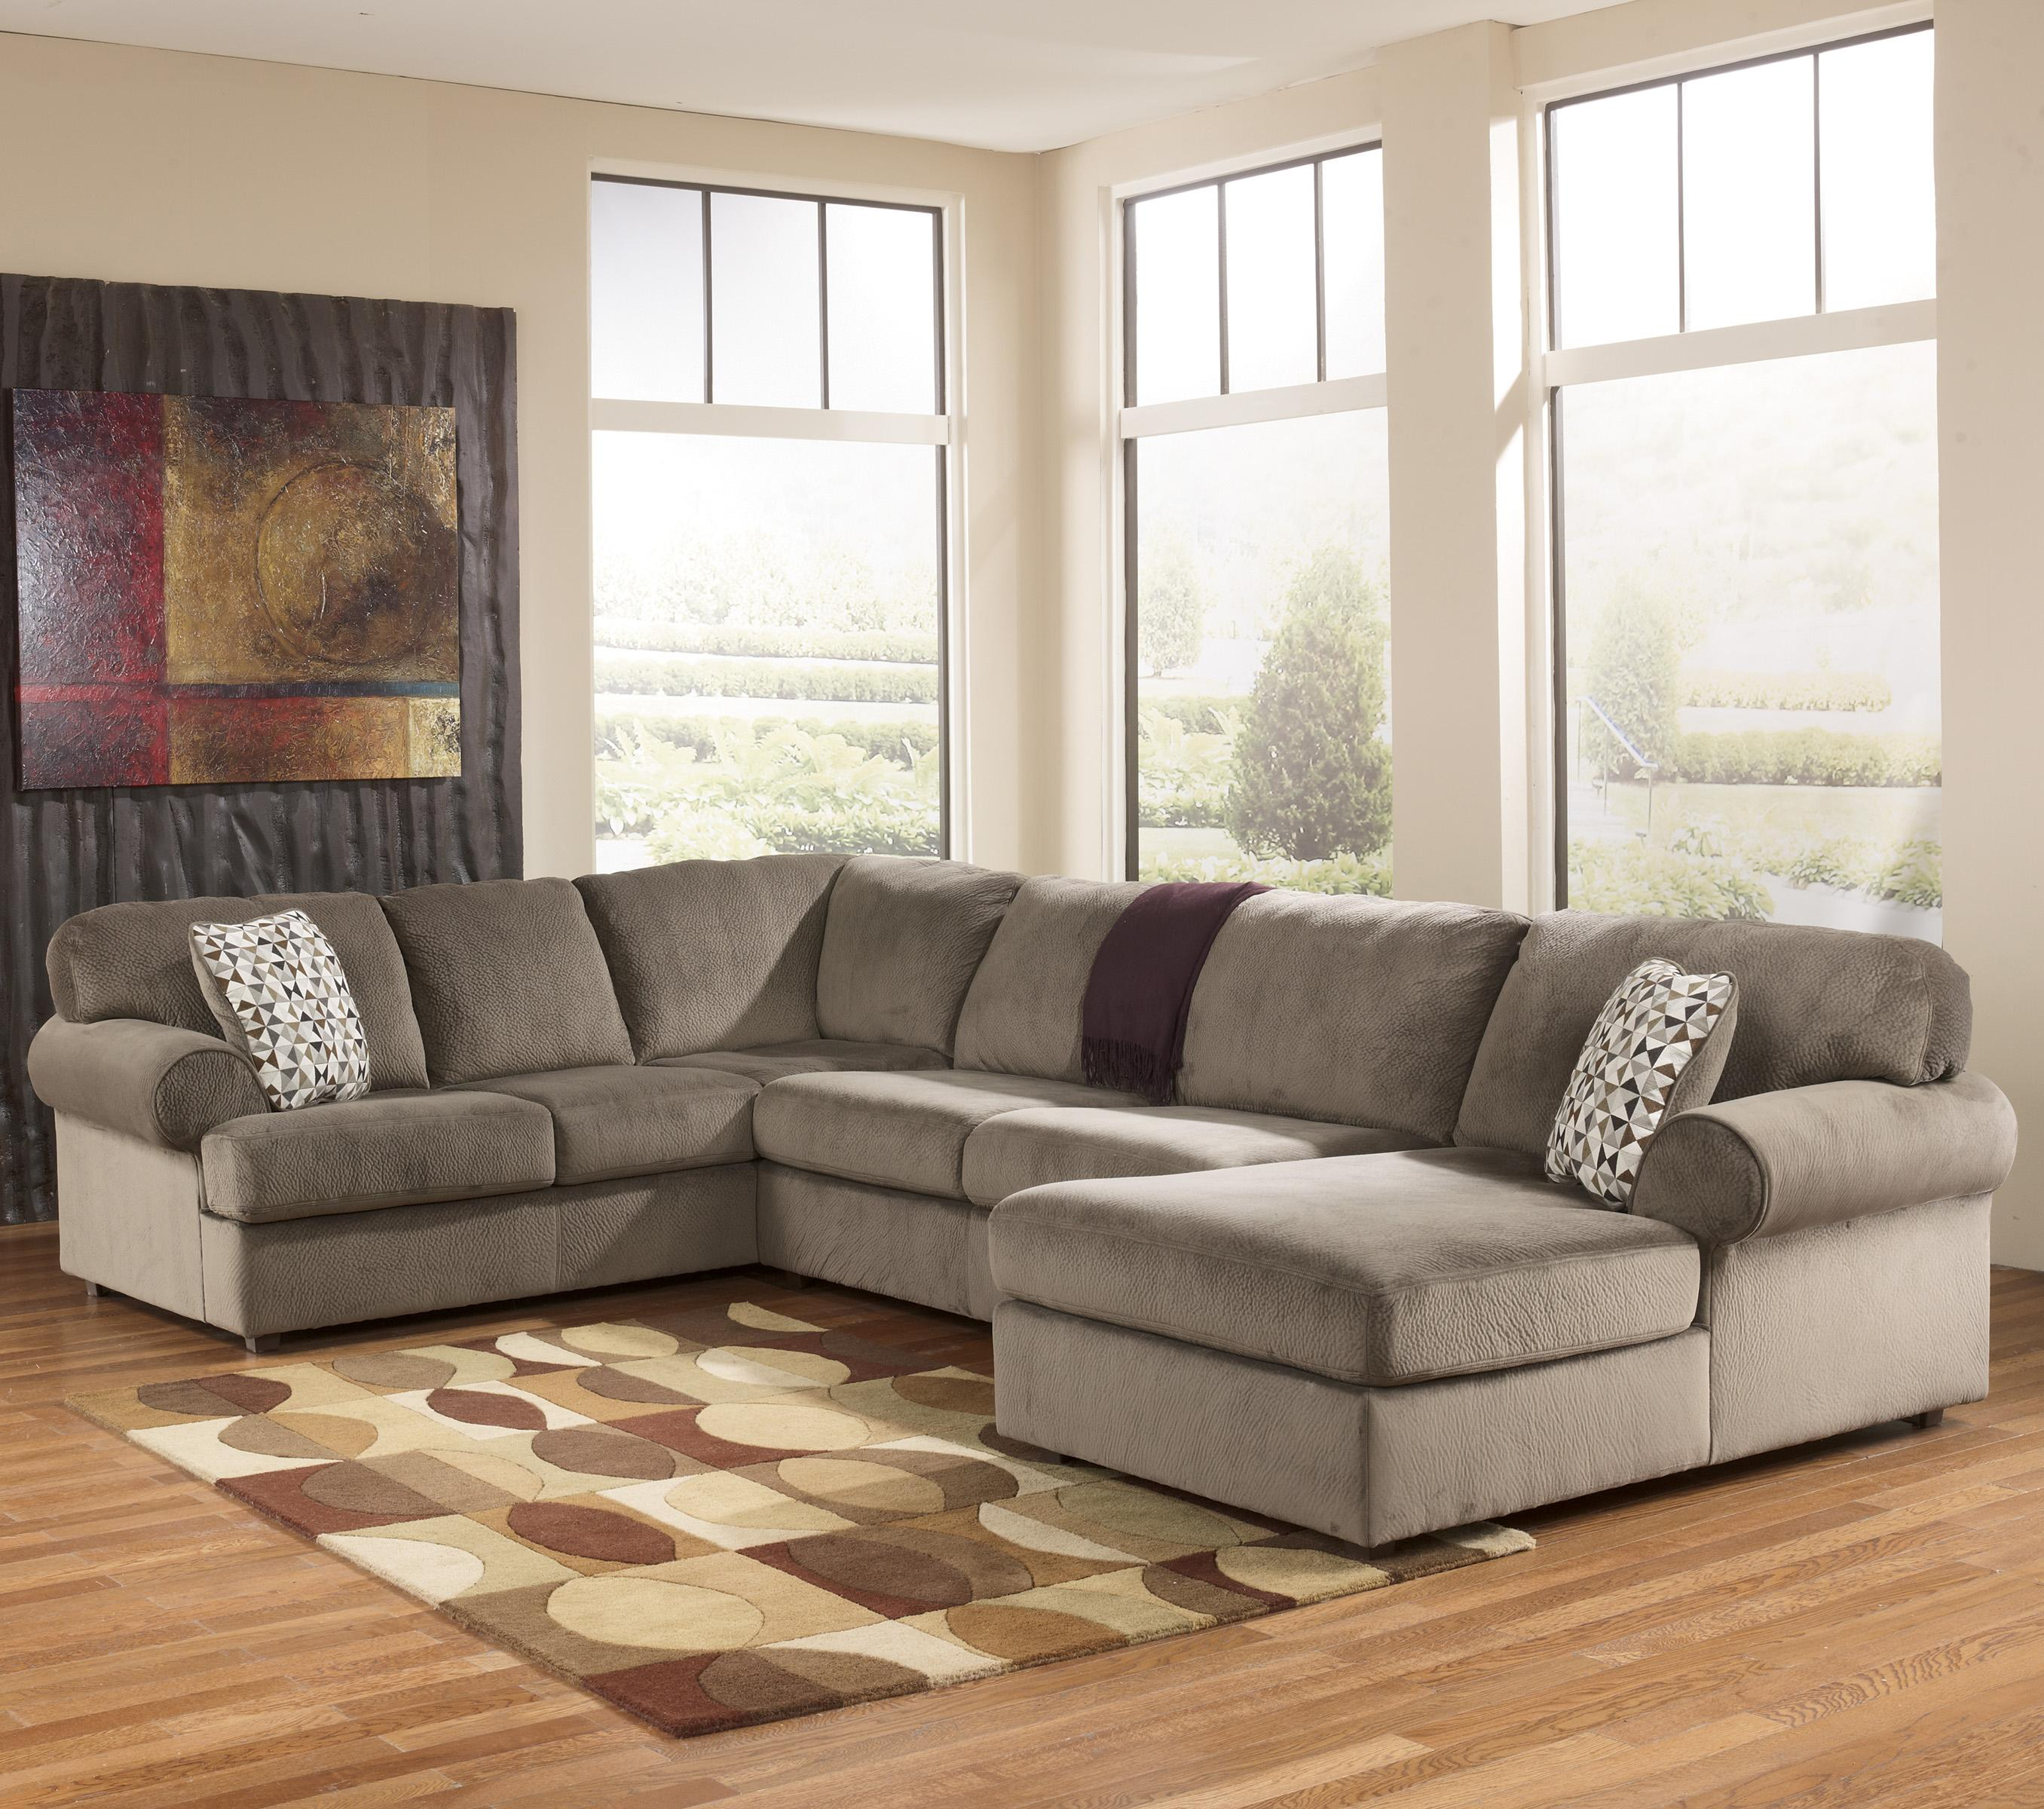 Ashley Furntiure: Casual Sectional Sofa With Right Chaise By Signature